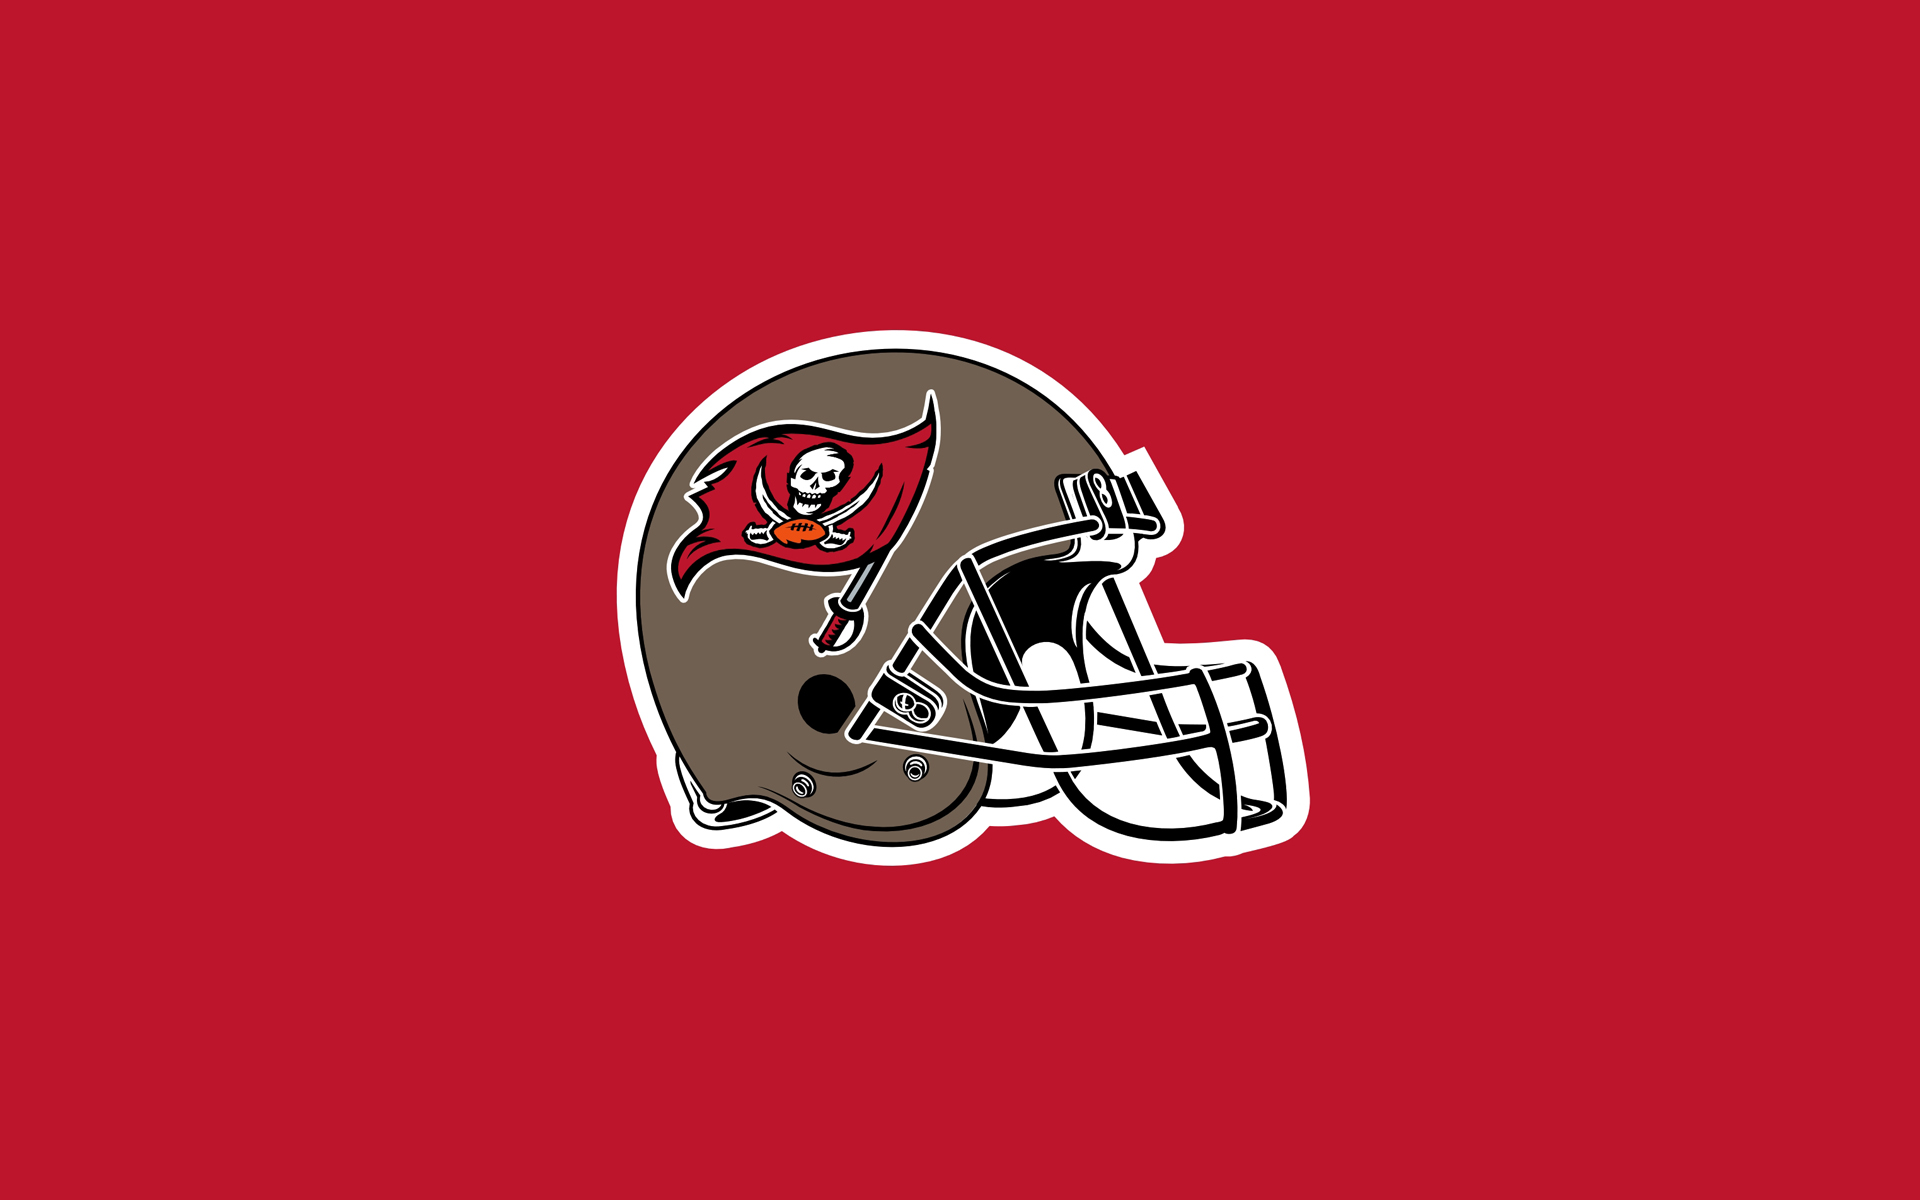 Nfl Wallpaper Hd 8 Hd Tampa Bay Buccaneers Wallpapers